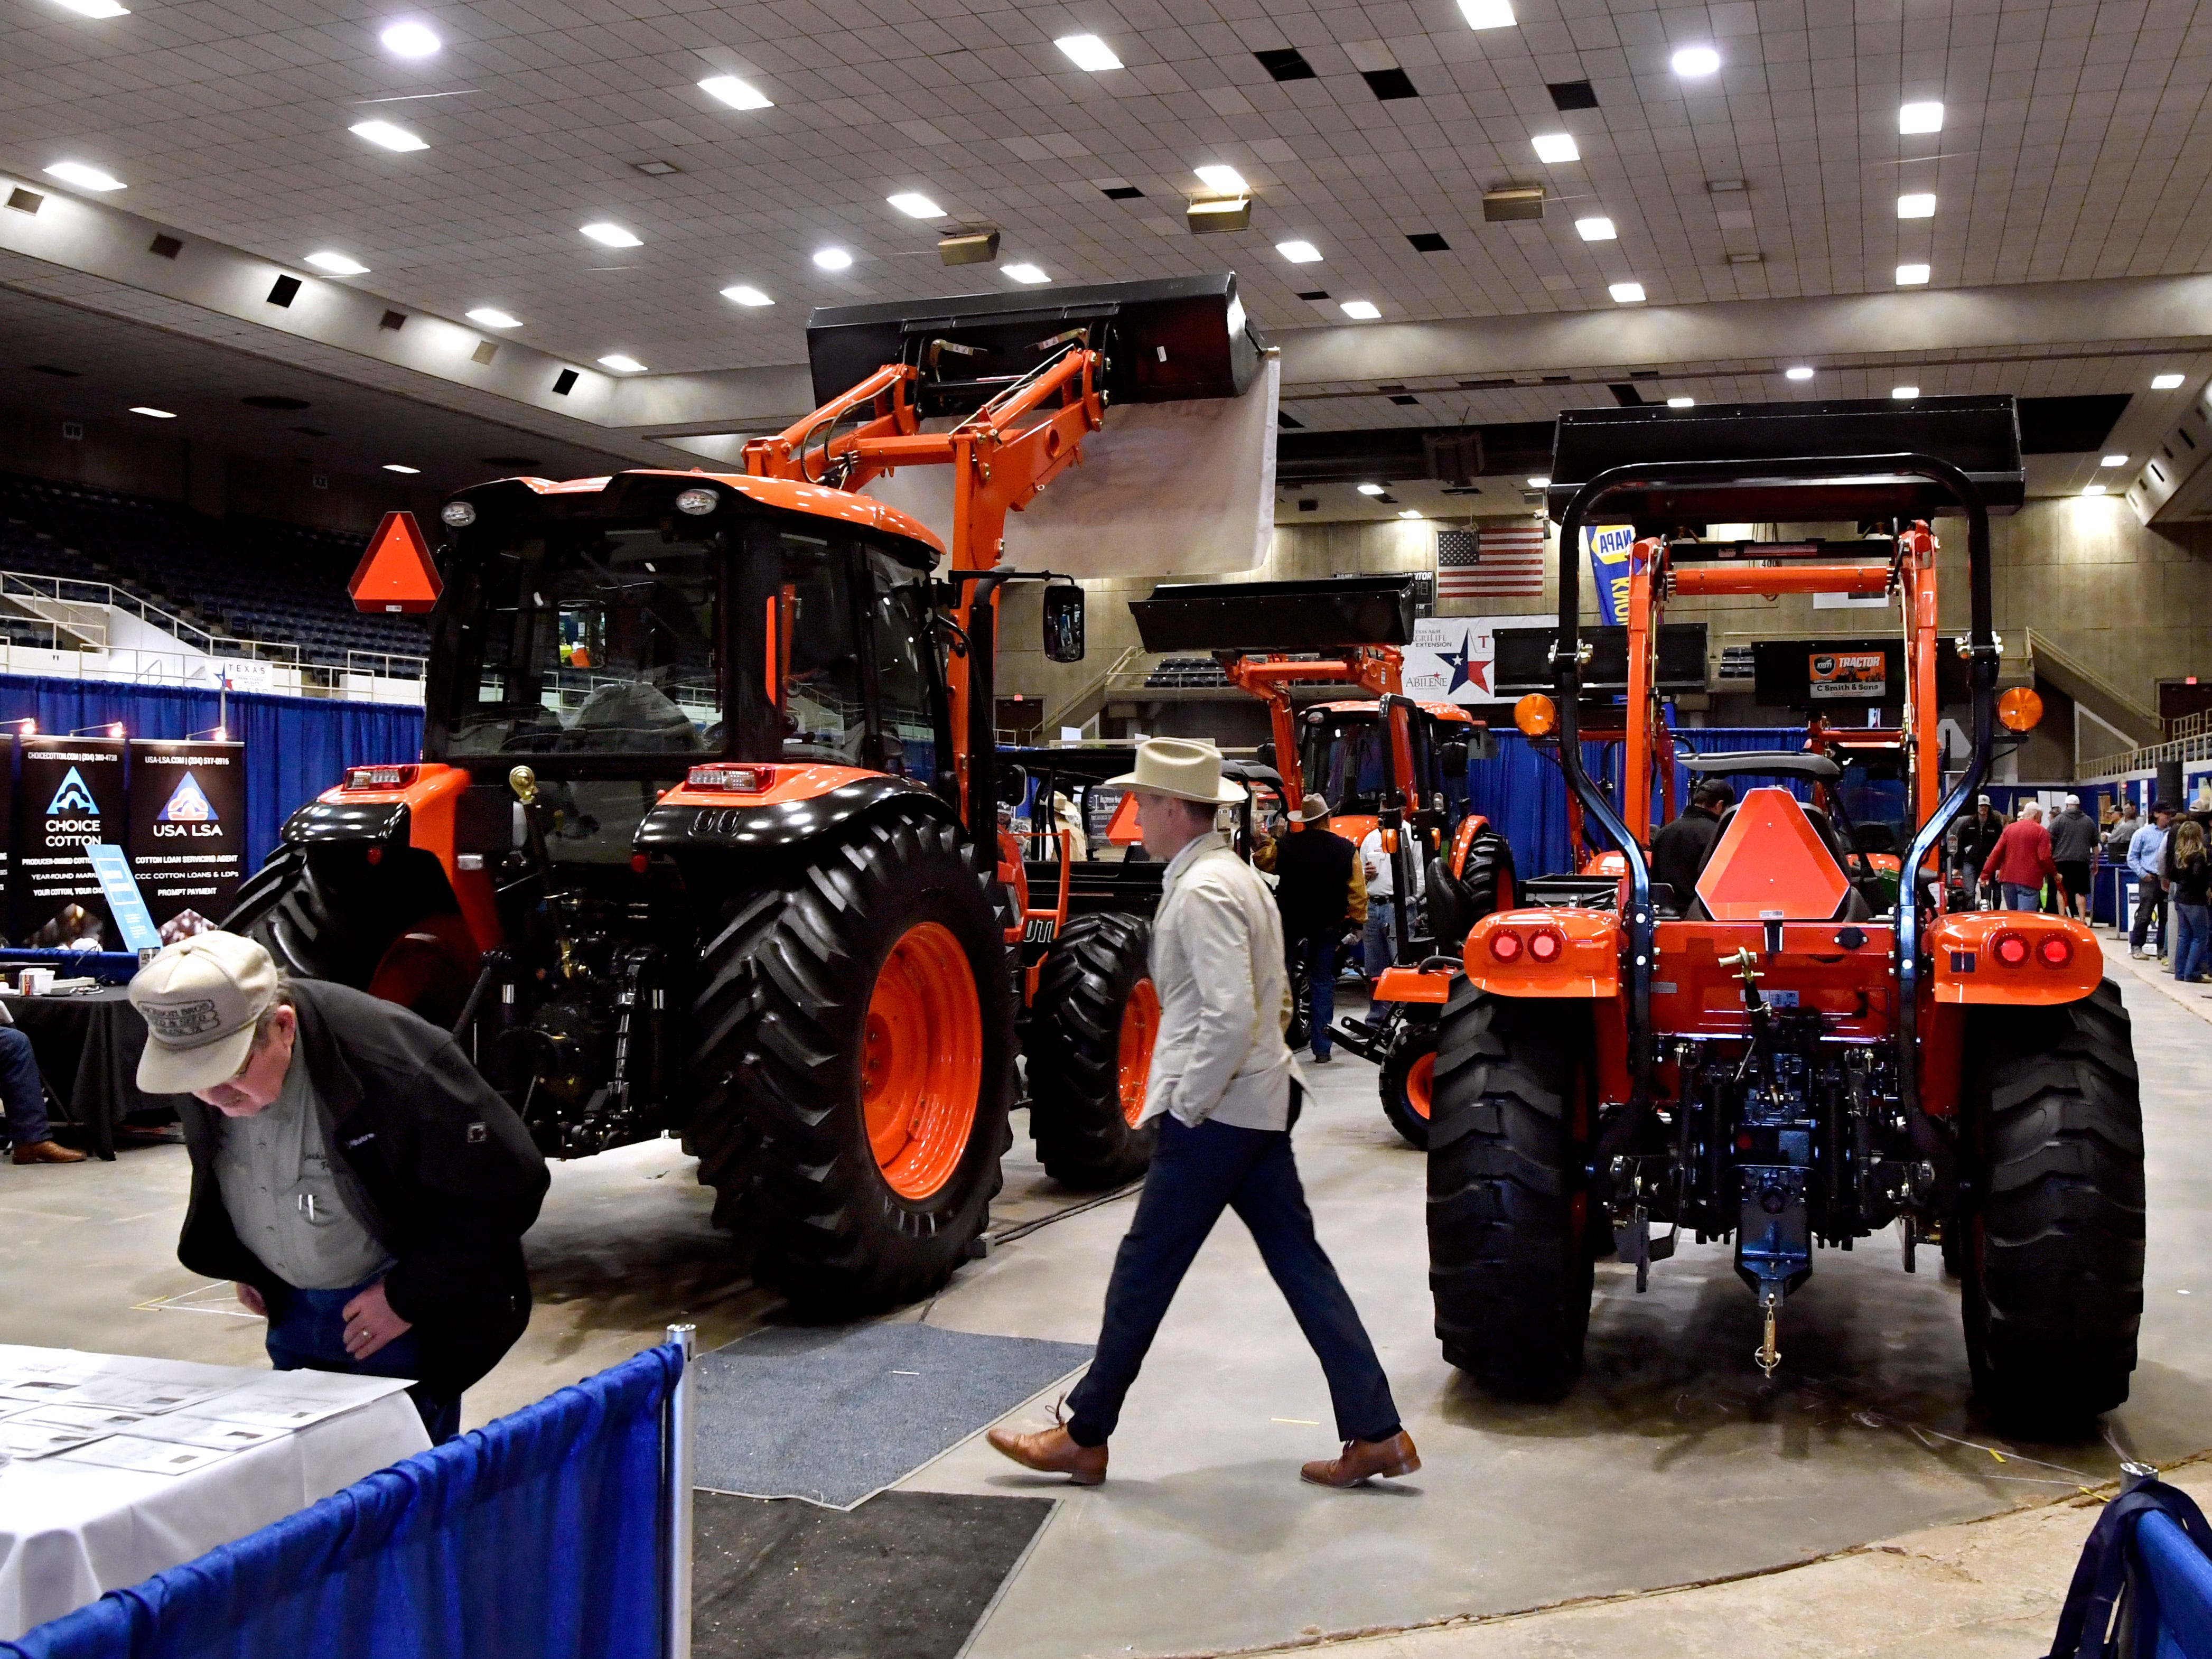 Attendees walk past farm equipment during the Farm-Ranch-Wildlife Expo Feb. 20, 2019. The two-day event was held at the Taylor County Expo Center.